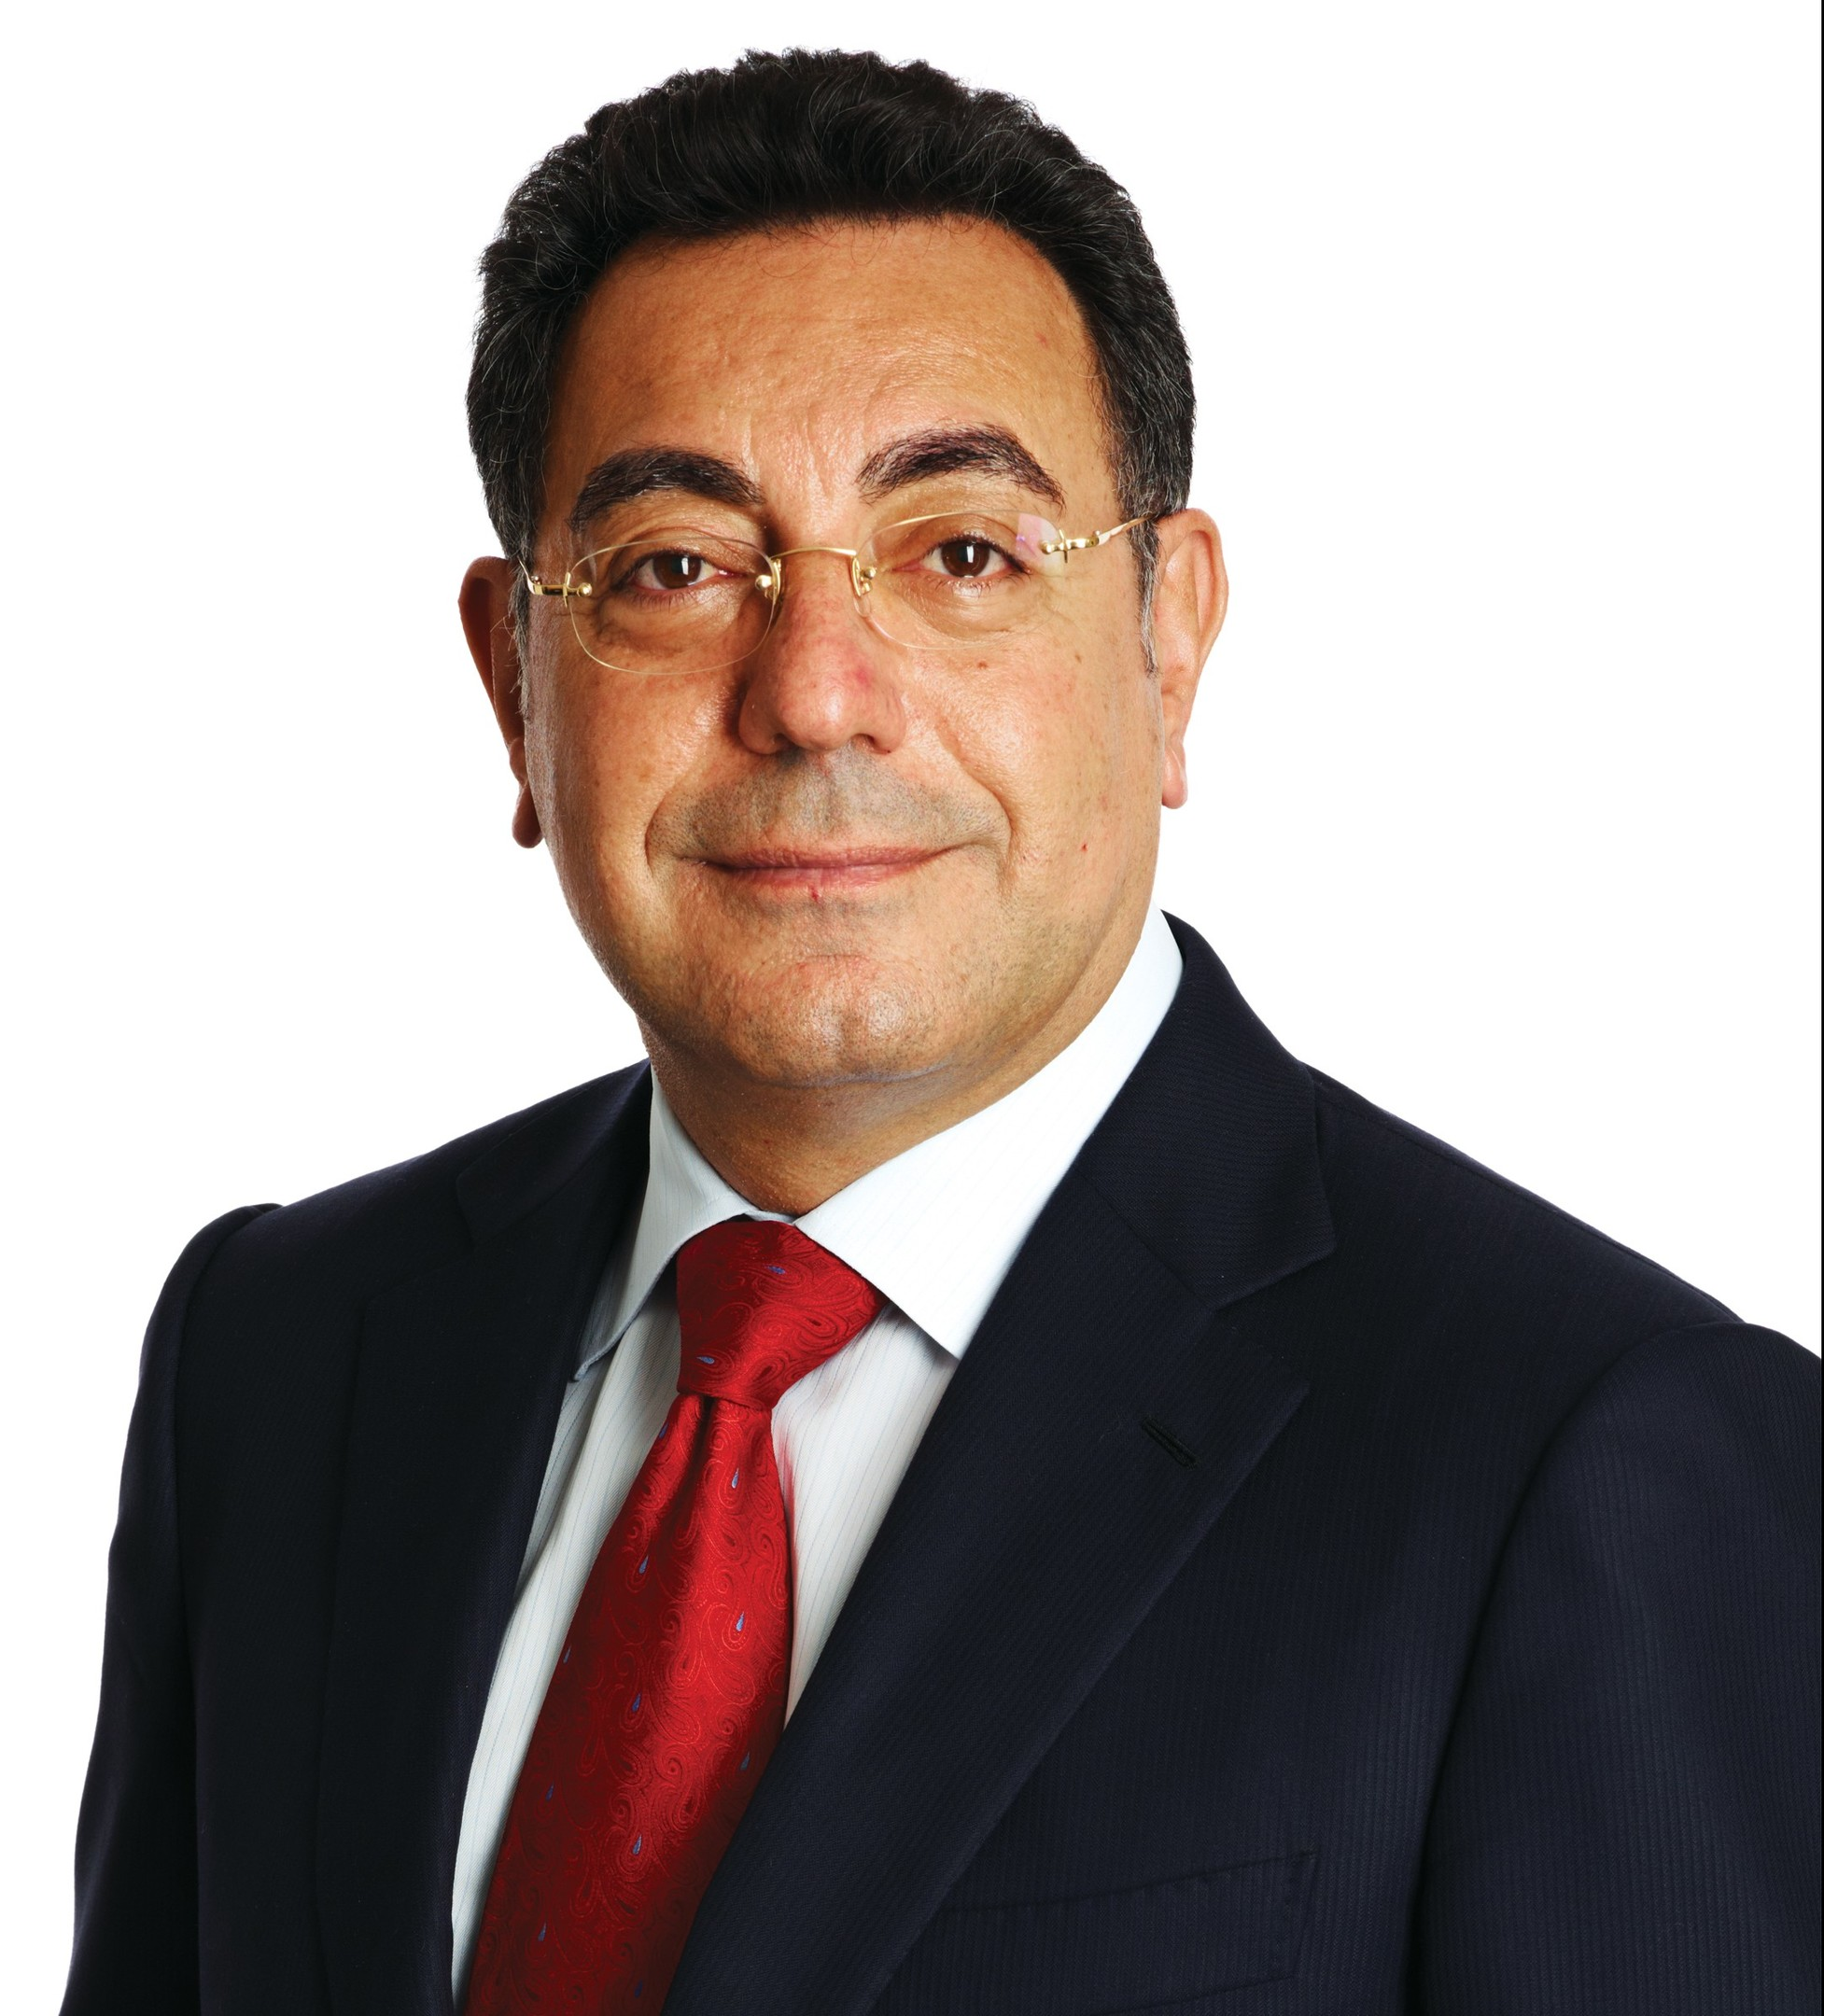 Samir Brikho ousted as chief executive of Amec Foster Wheeler at board meeting